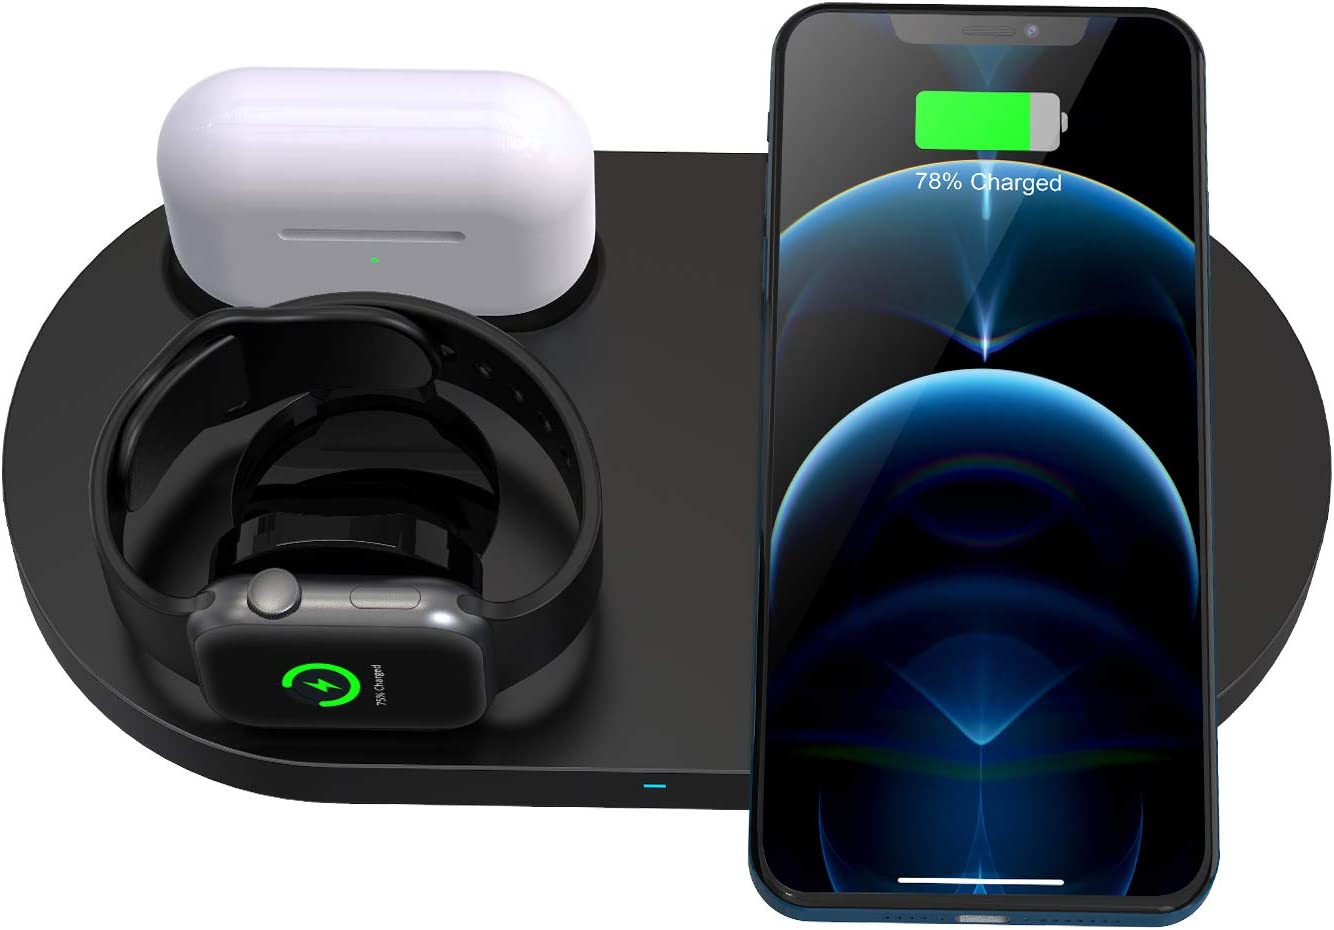 Wireless Charger, 3 in 1 Wireless Charging Station,Wireless Charging Stand for iPhone 12/12 Pro/12 Pro Max/12 mini/11/11 Pro/SE/X/XR/iWatch 6/5/4/3/2/Airpods 1/2/Pro,Fast Qi-Certified Charging pad.